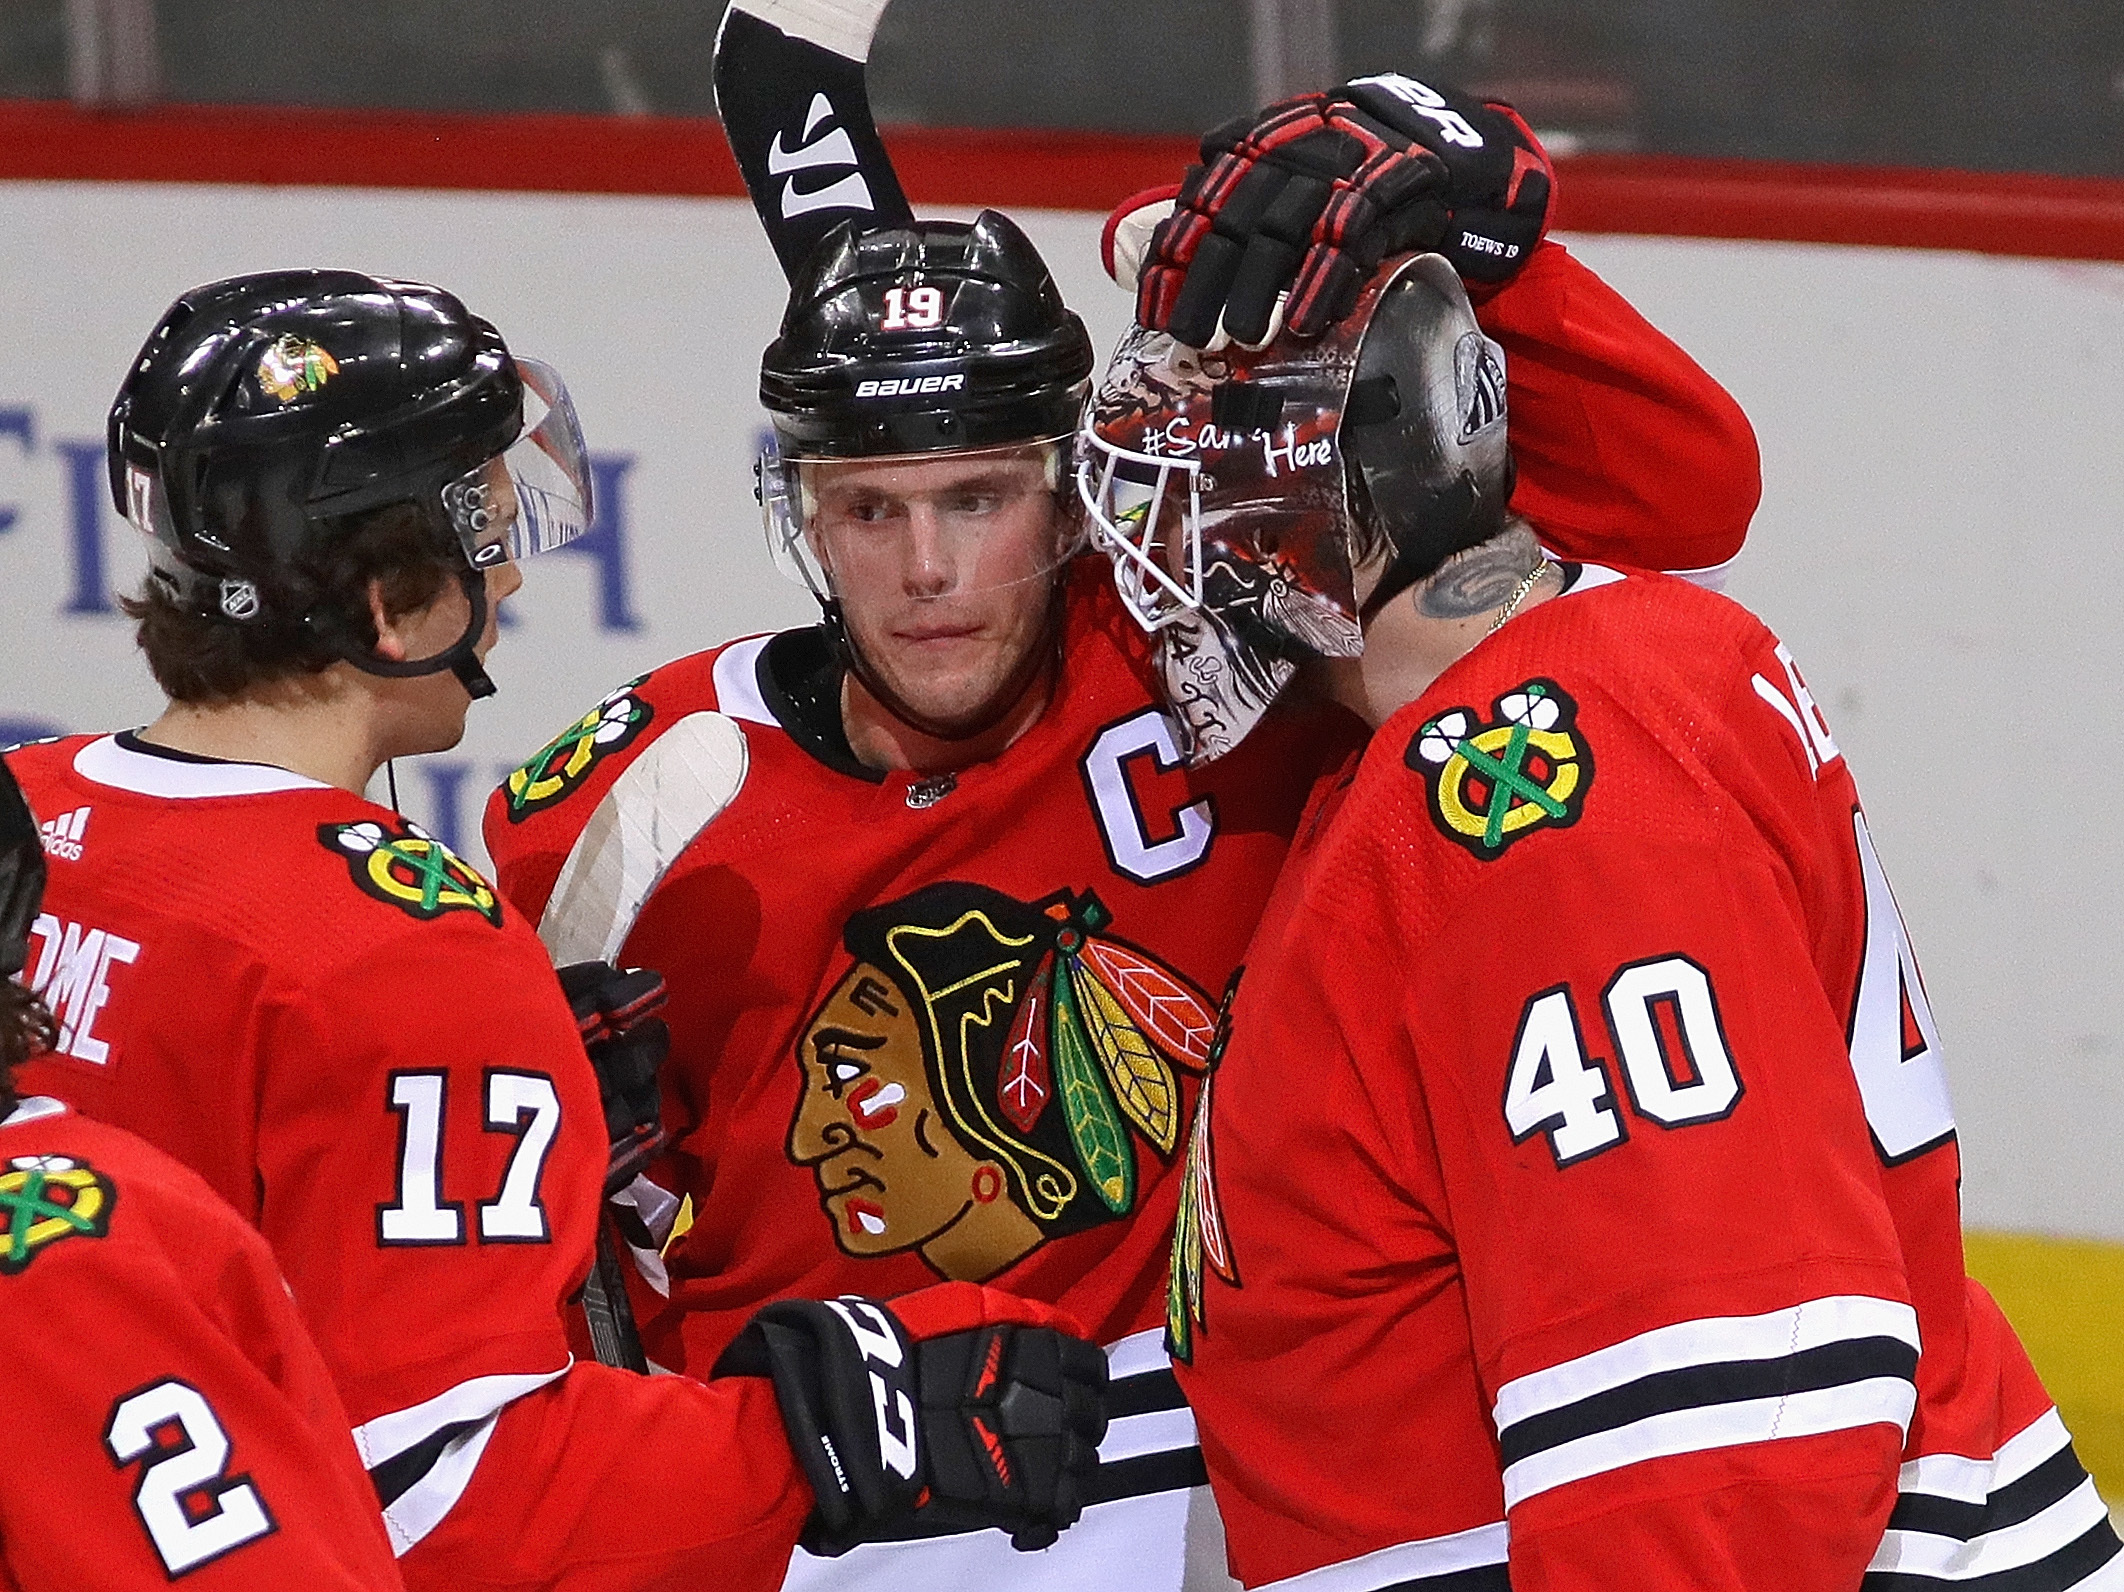 Robin Lehner's Blackhawks tenure is over after just 33 appearances, but he's already dearly missed by his former teammates.